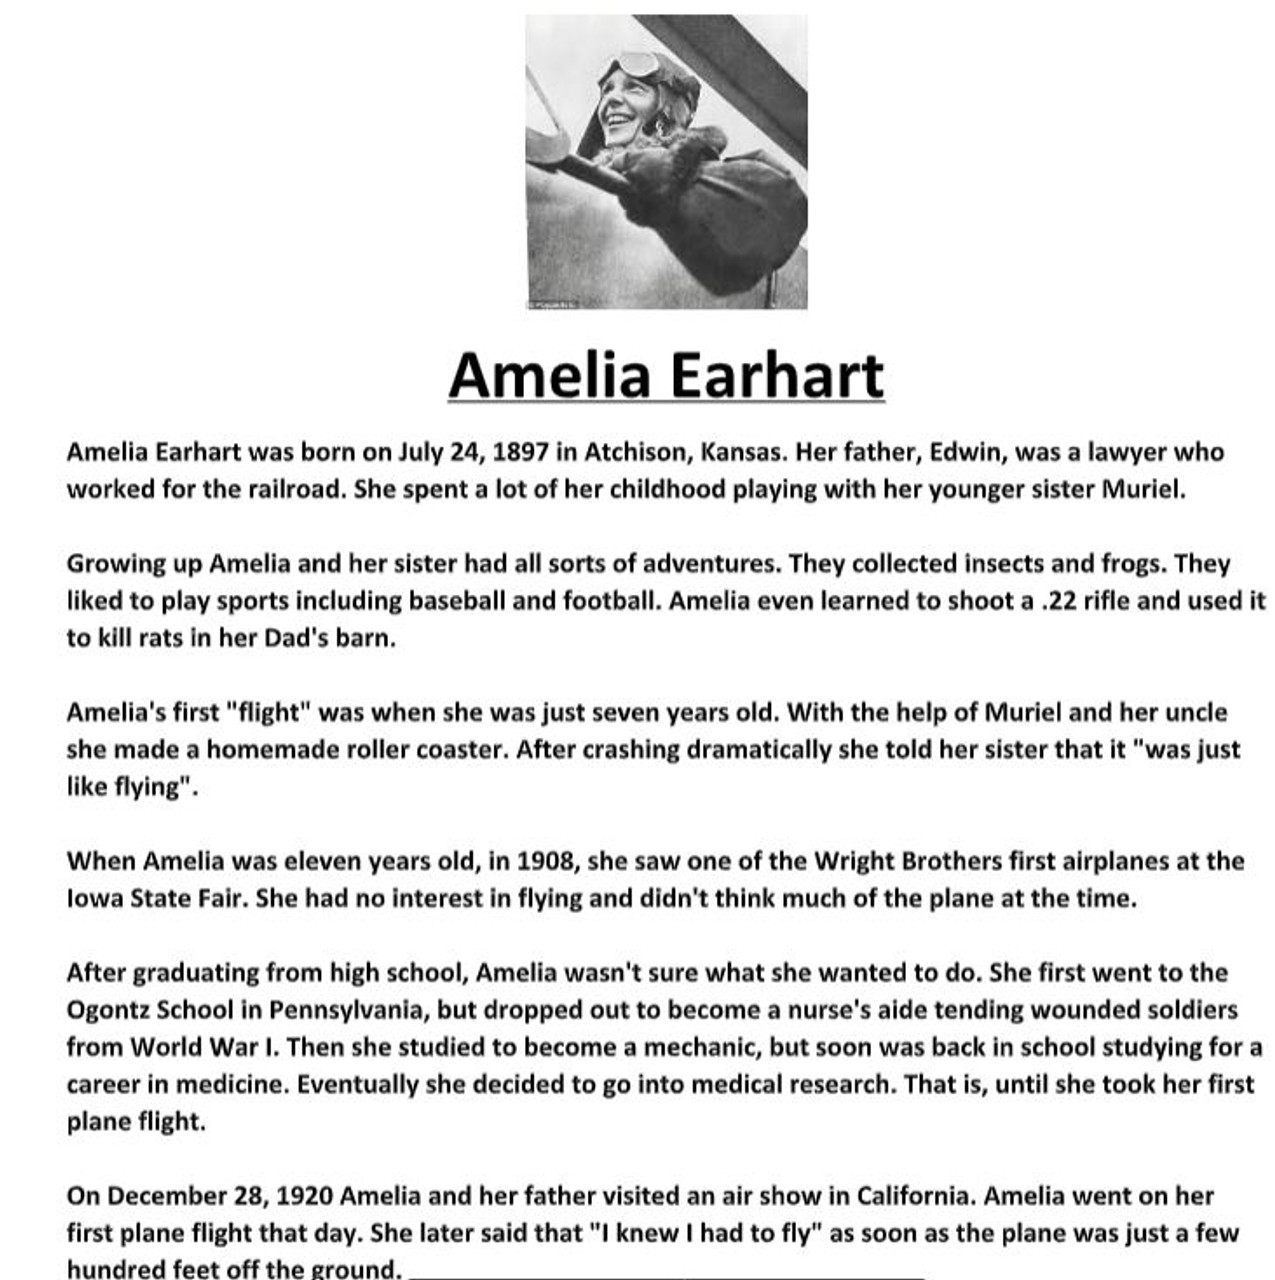 small resolution of Amelia Earhart Biography and Assignment Worksheet - Amped Up Learning